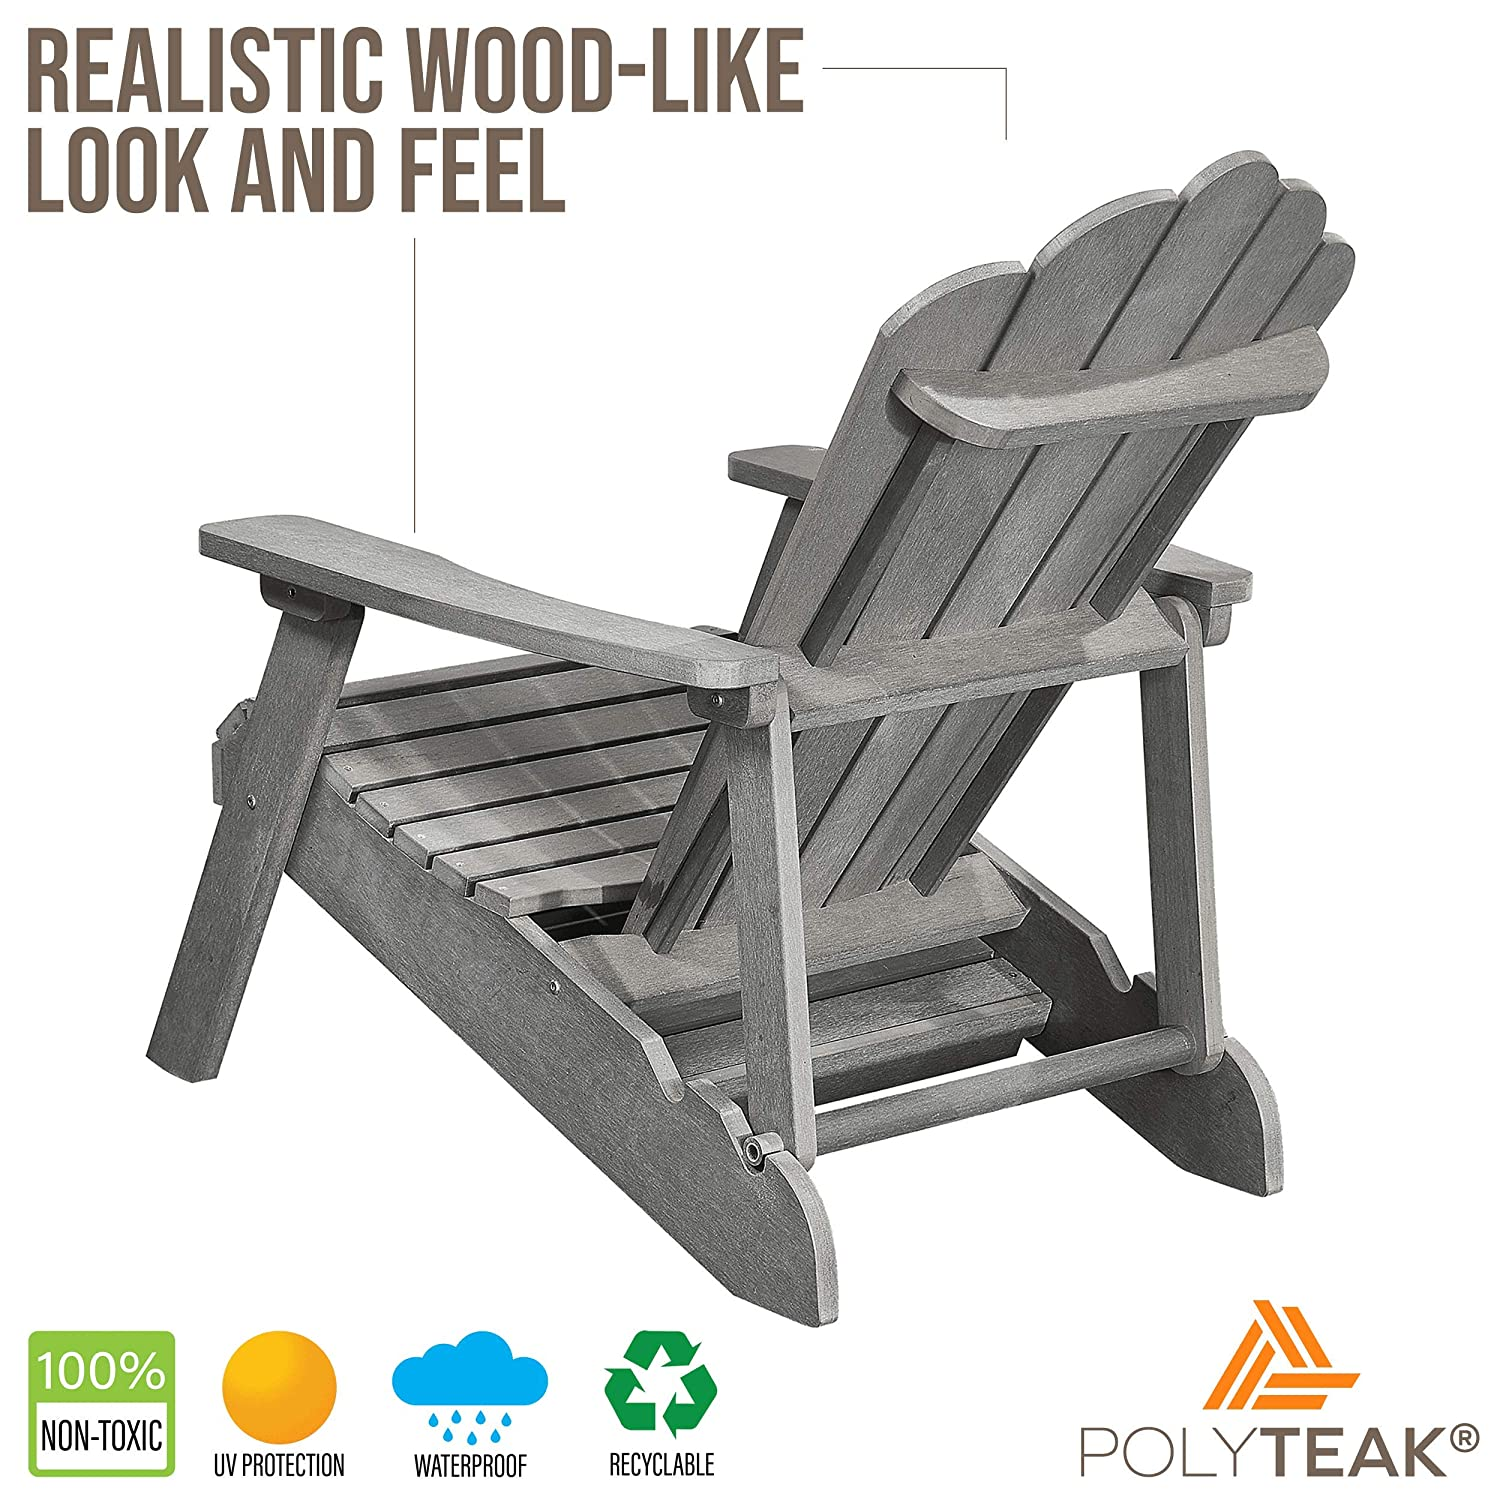 PolyTEAK Deluxe Oversized Reclining Poly Adirondack Chair with Pullout Ottoman, Stone Gray Adult-Size, Weather Resistant, Made from Plastic